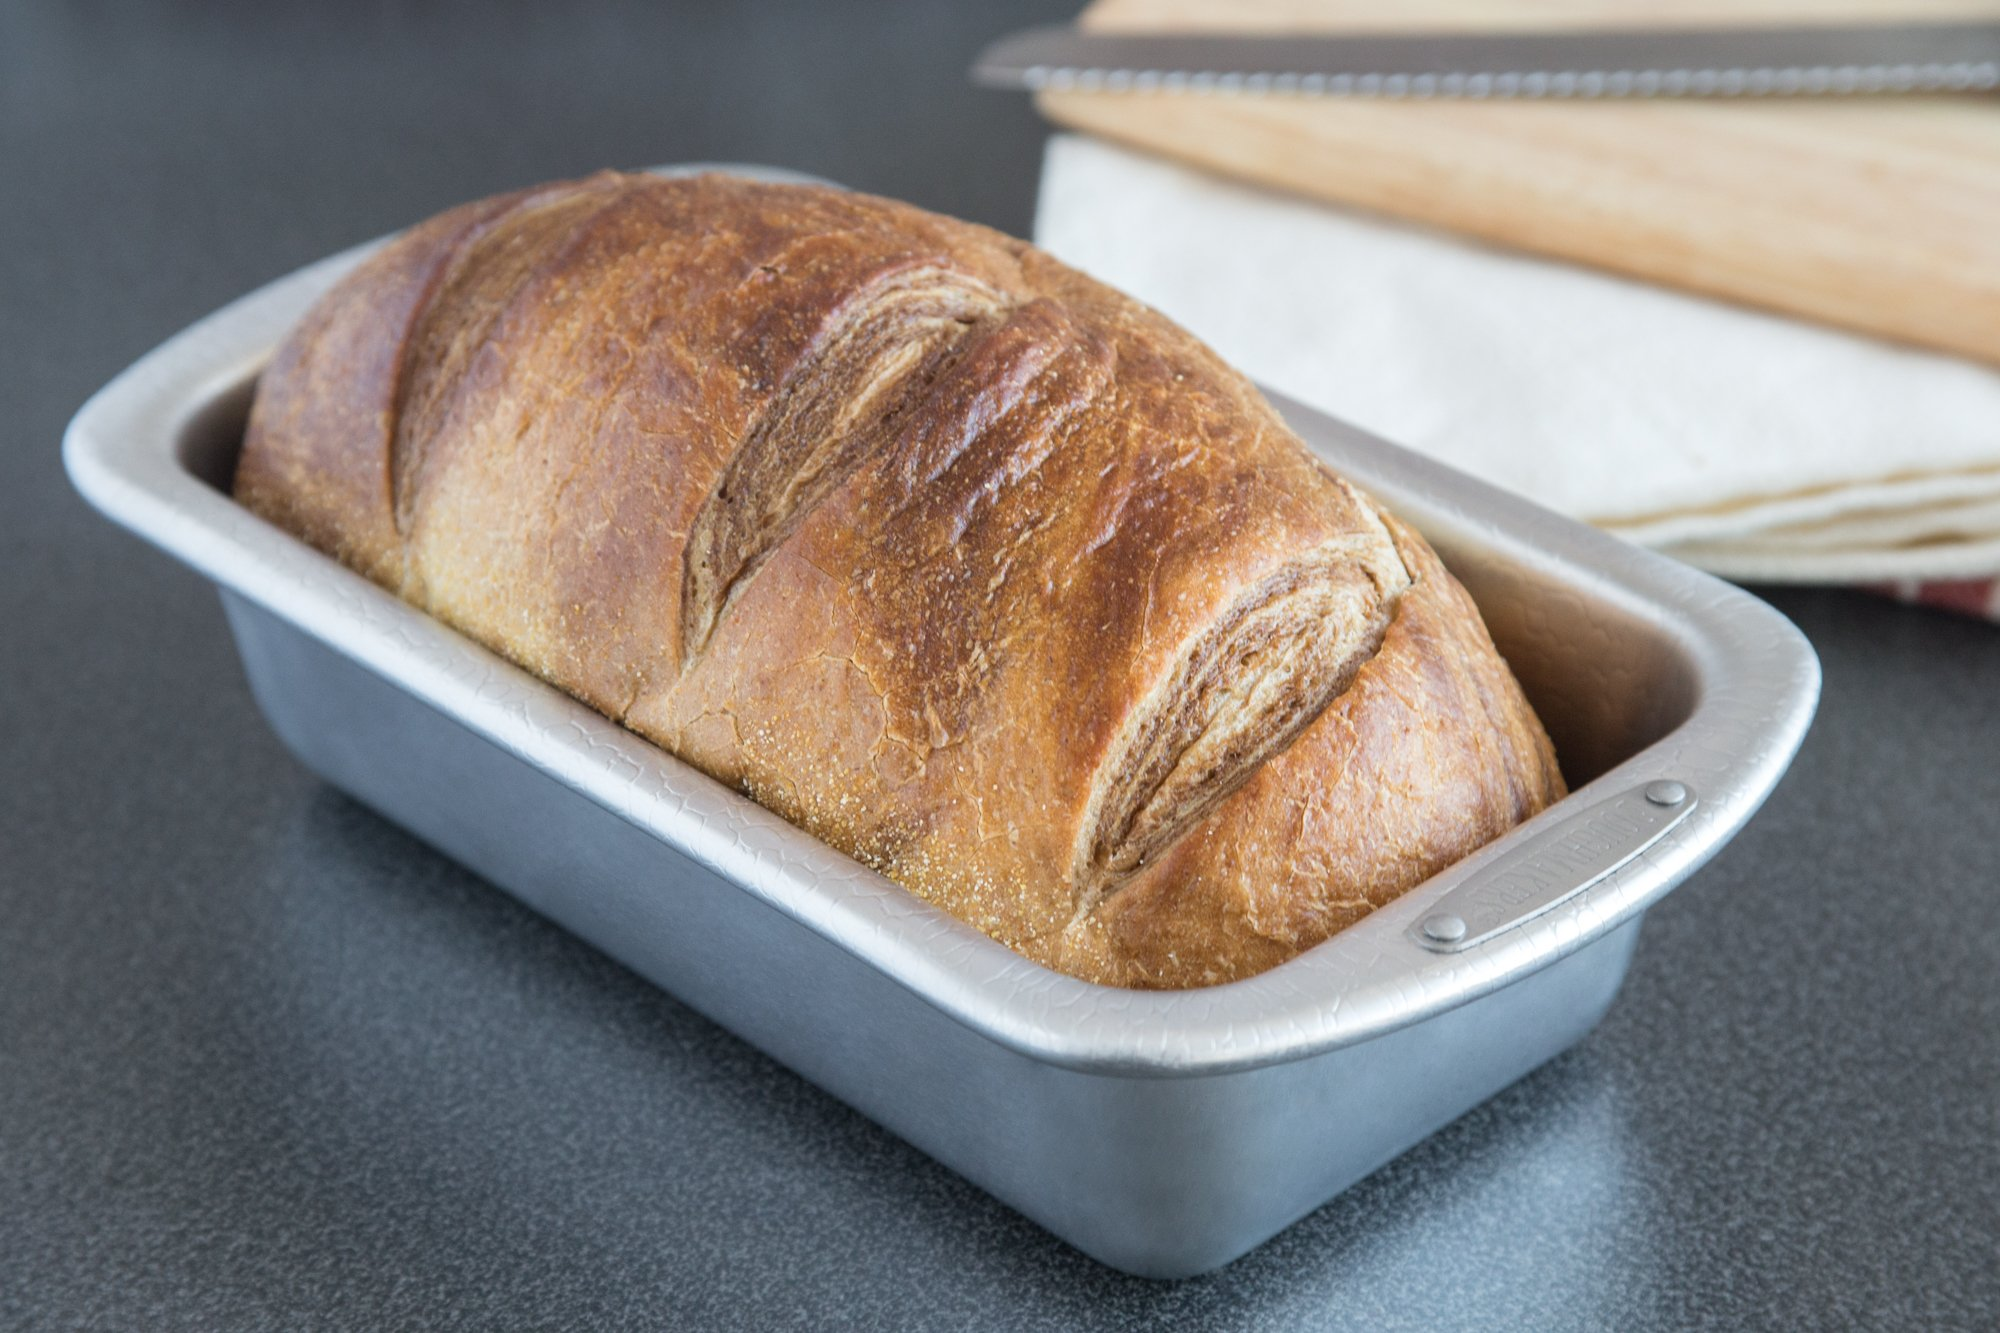 Loaf Pan Commercial Grade Aluminum 8.5'' x 4.5'' by Doughmakers (Image #8)